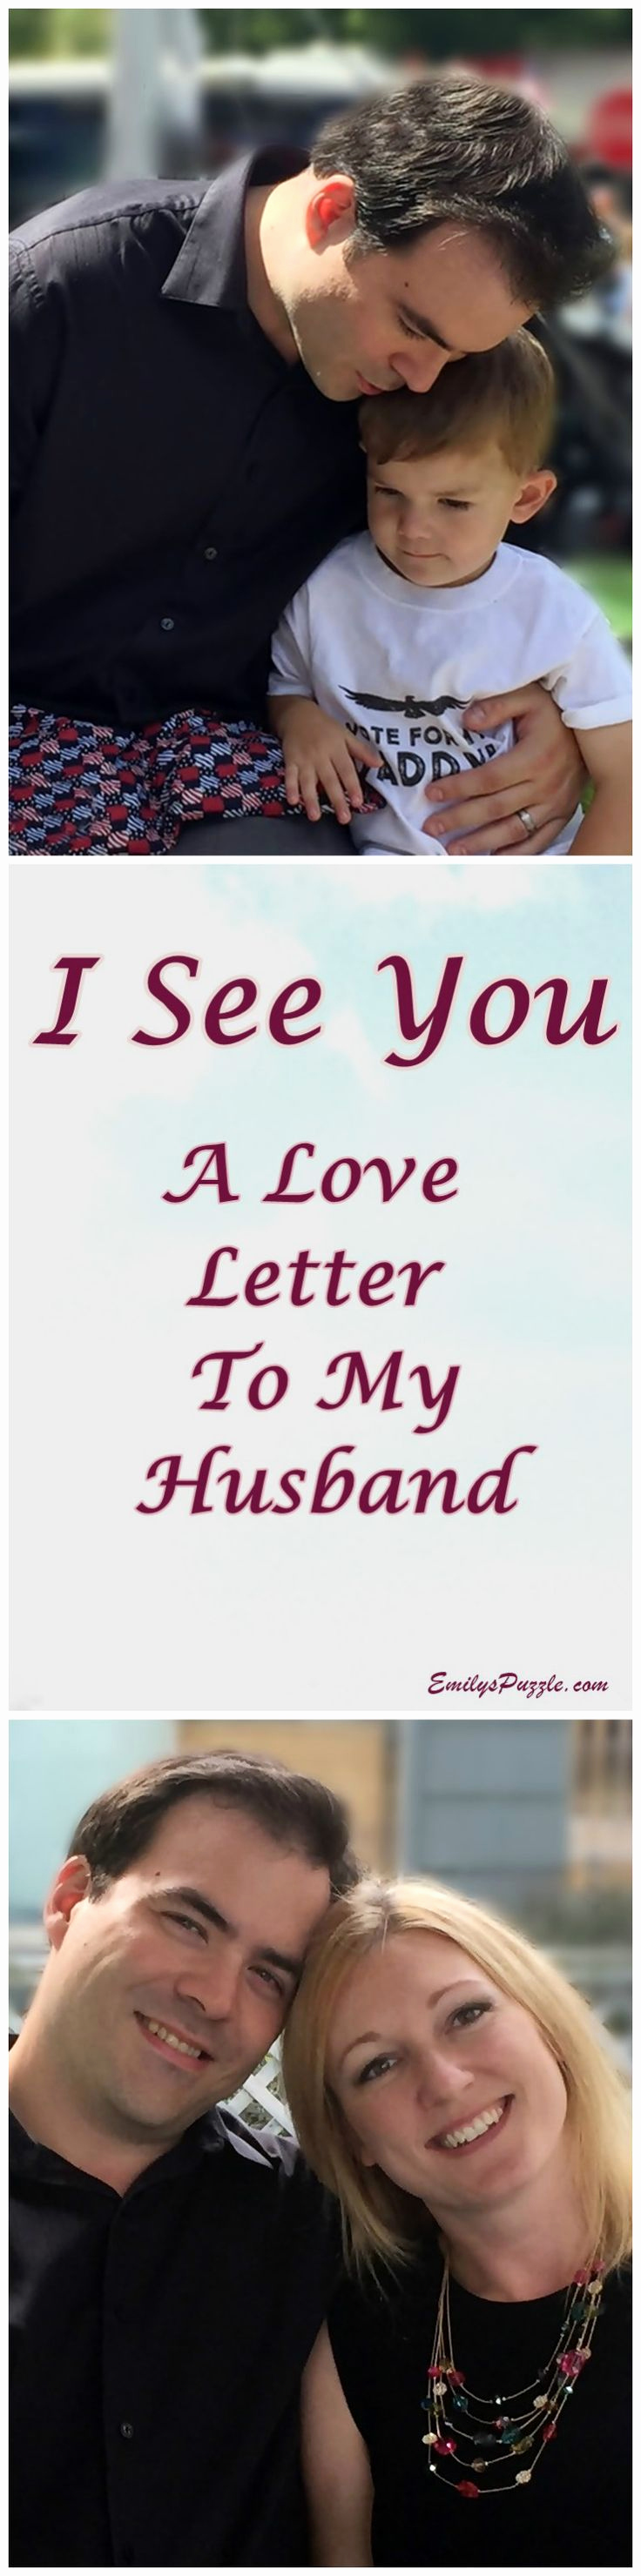 Letter to My Husband Inspirational I See You A Love Letter to My Husband